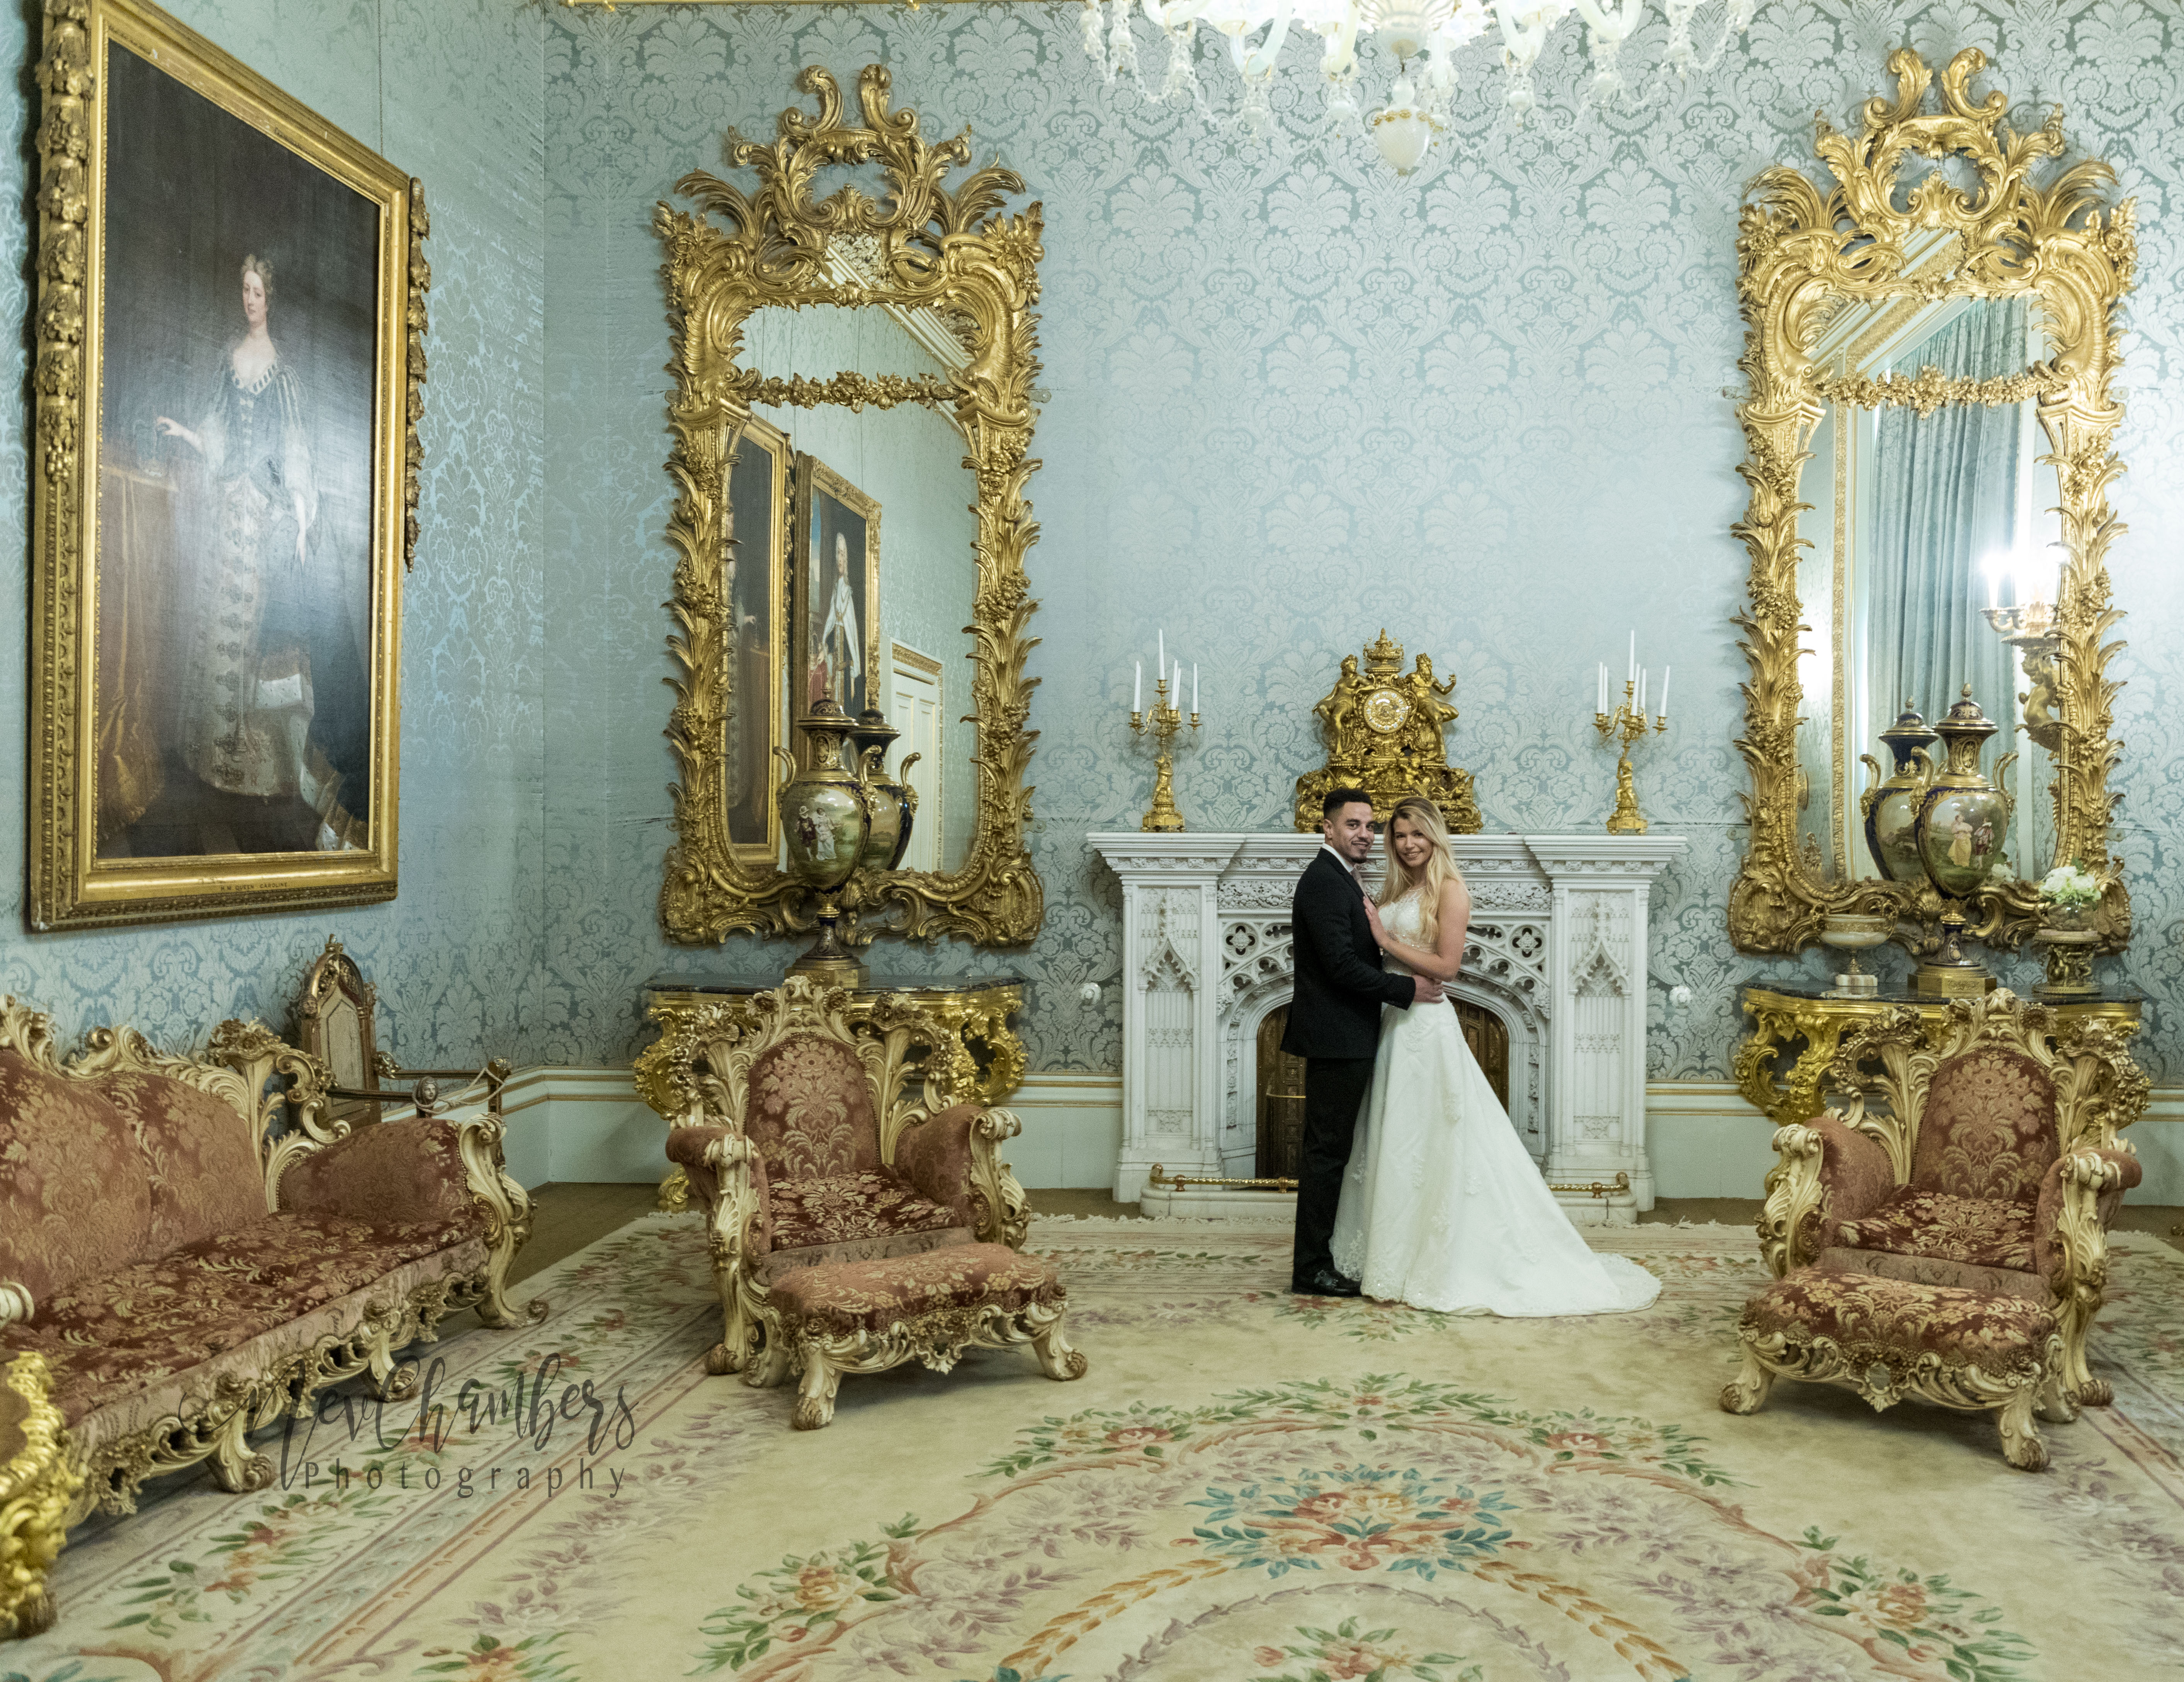 bride and groom pose in front of ornate fireplace. Large gold clock in the centre of fireplace. Either side there are two extremely large gold mirrors.